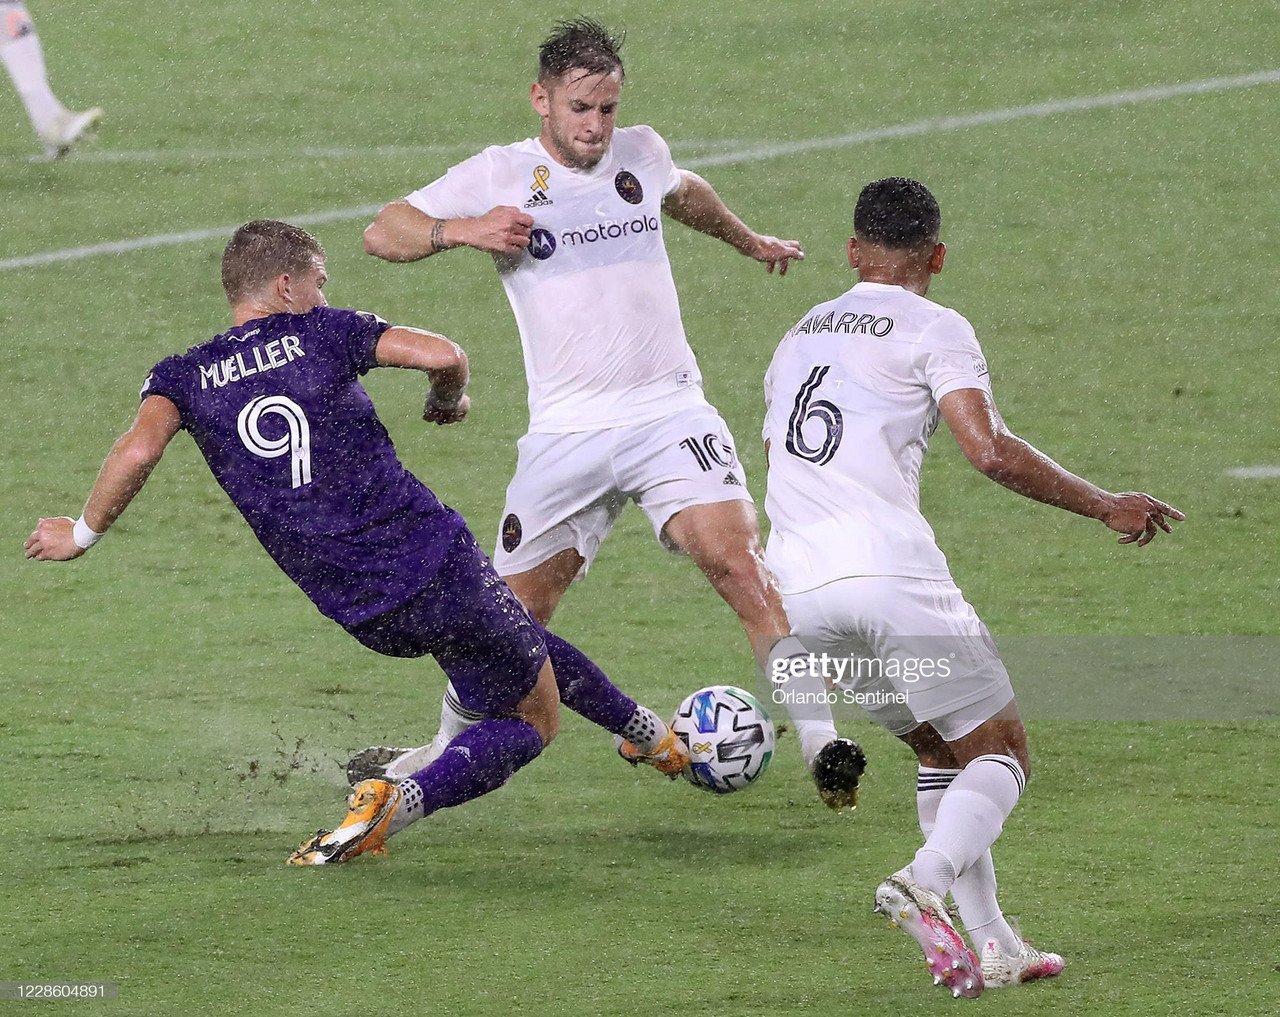 Chicago Fire vs Orlando City preview: How to watch, kick-off time, team news, predicted lineups, and ones to watch